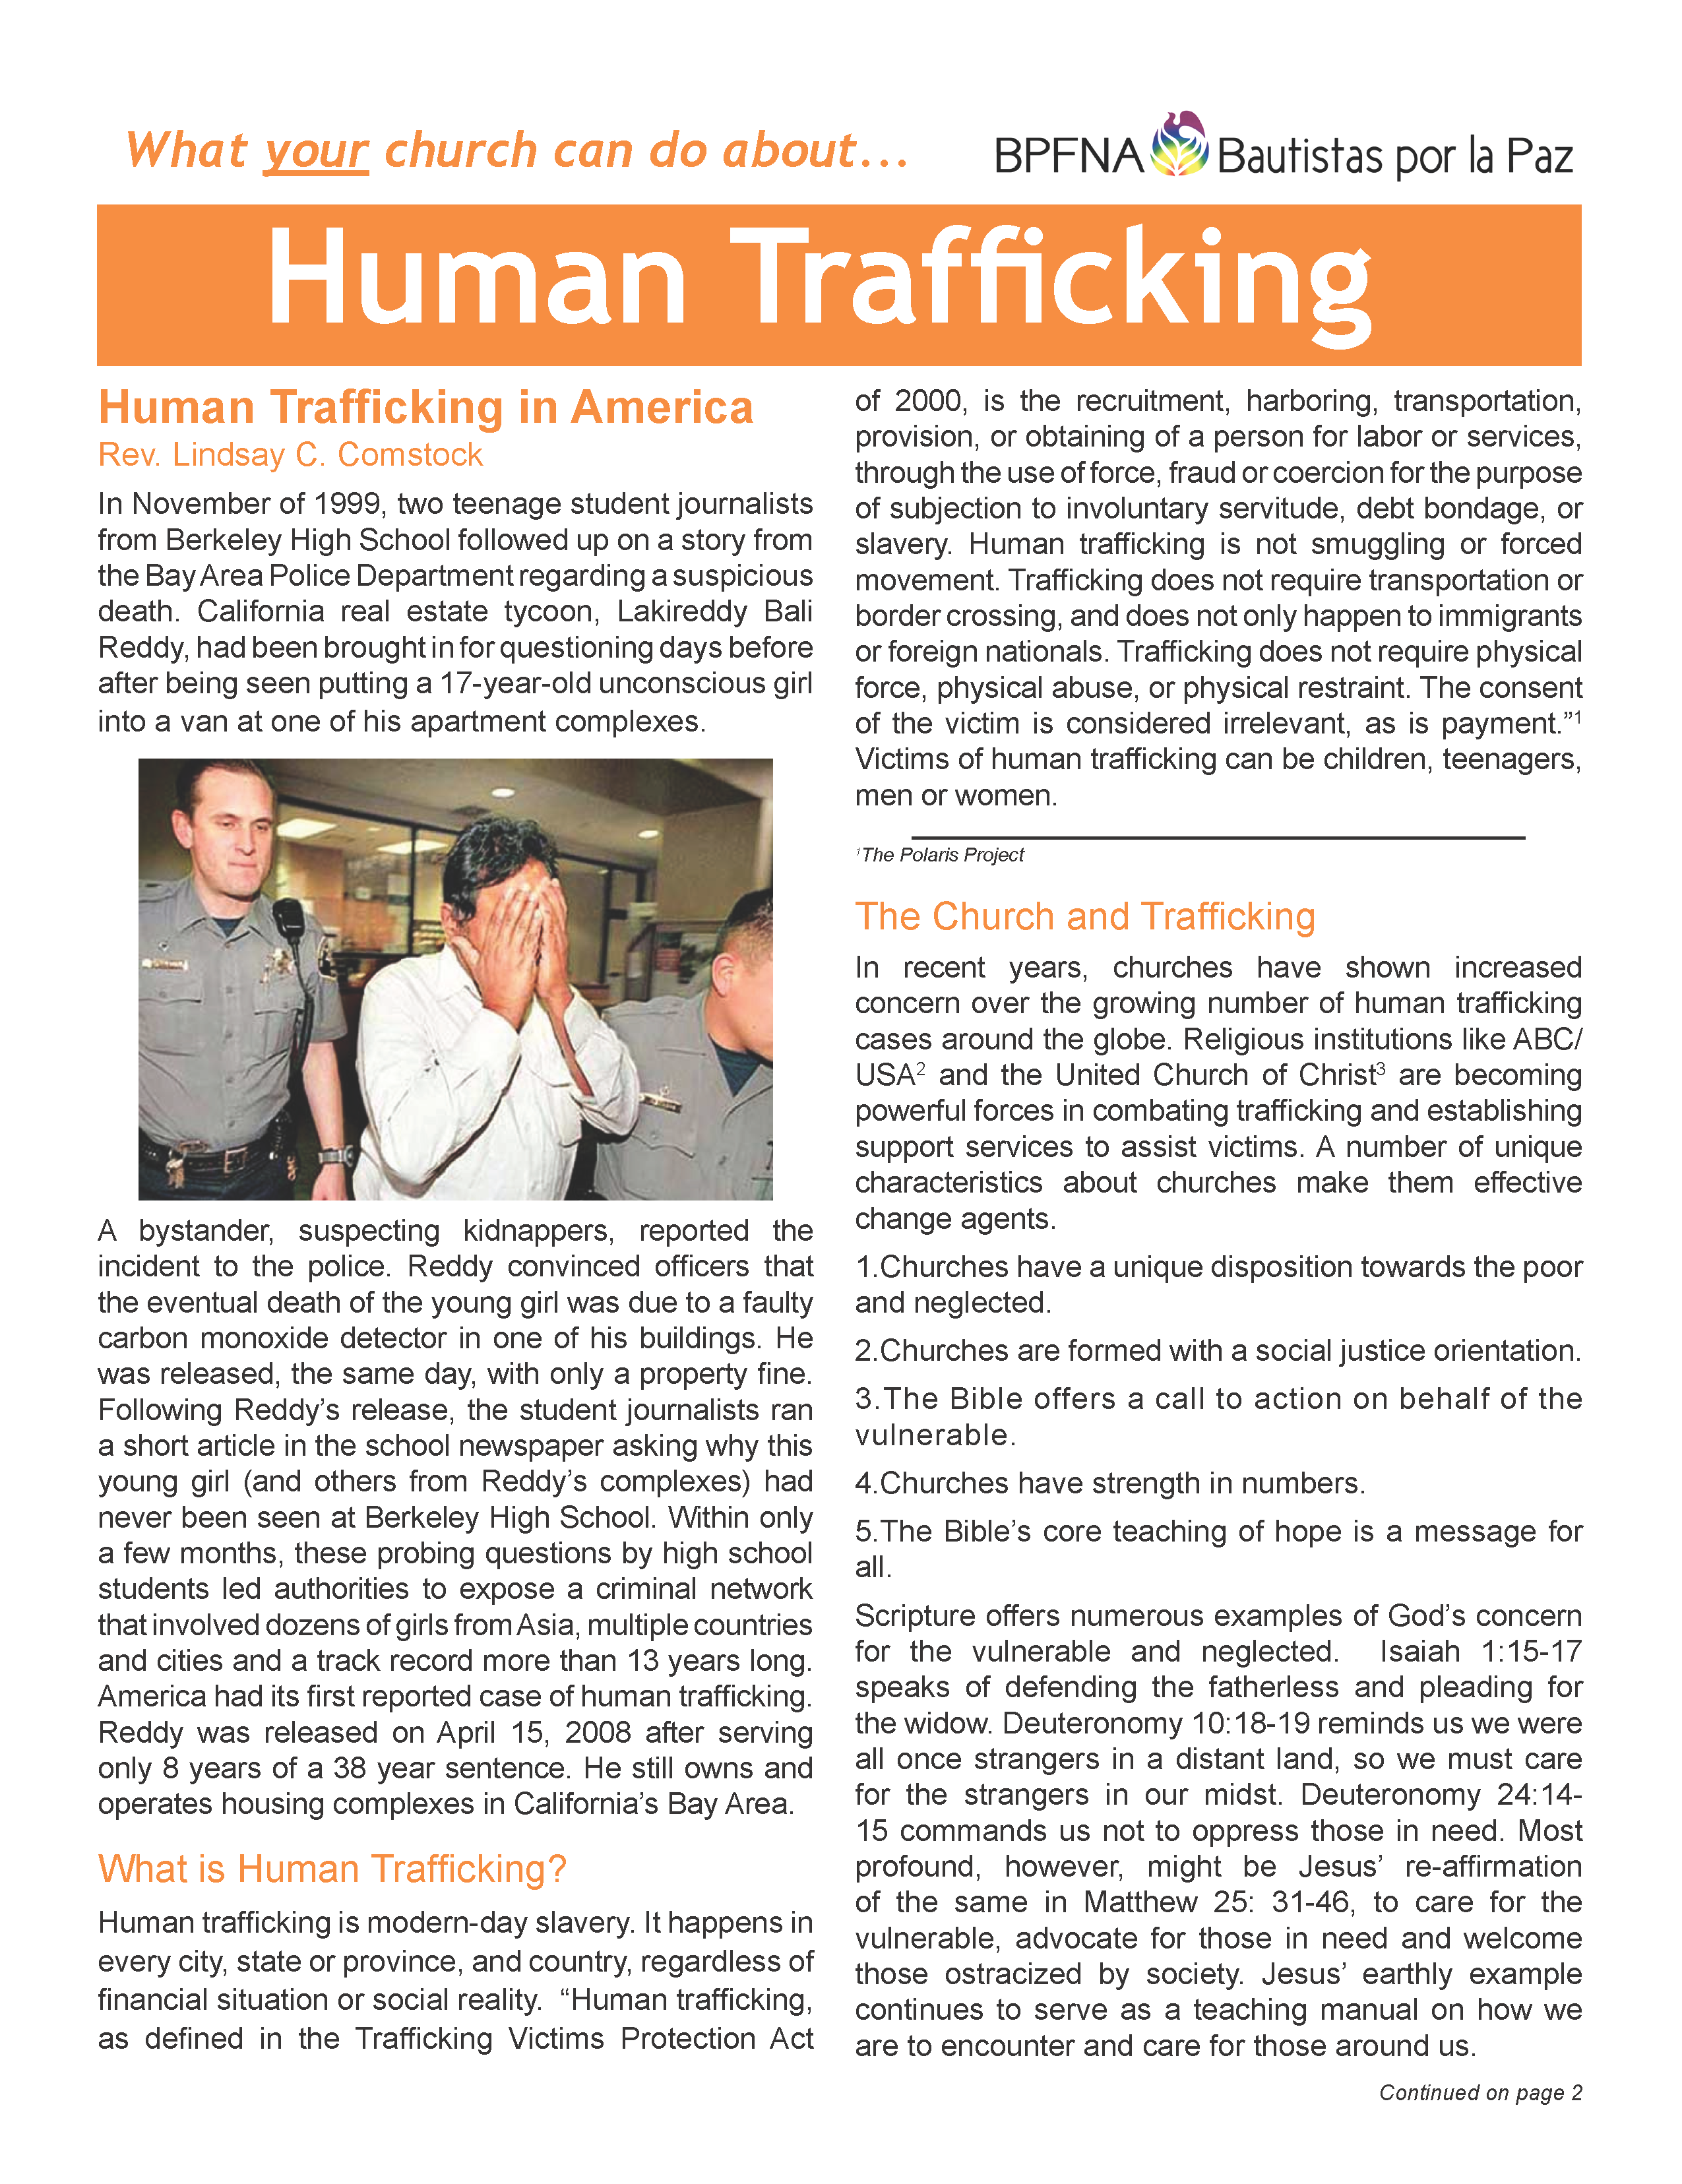 Thumbnail of What Your Church Can Do About... Human Trafficking